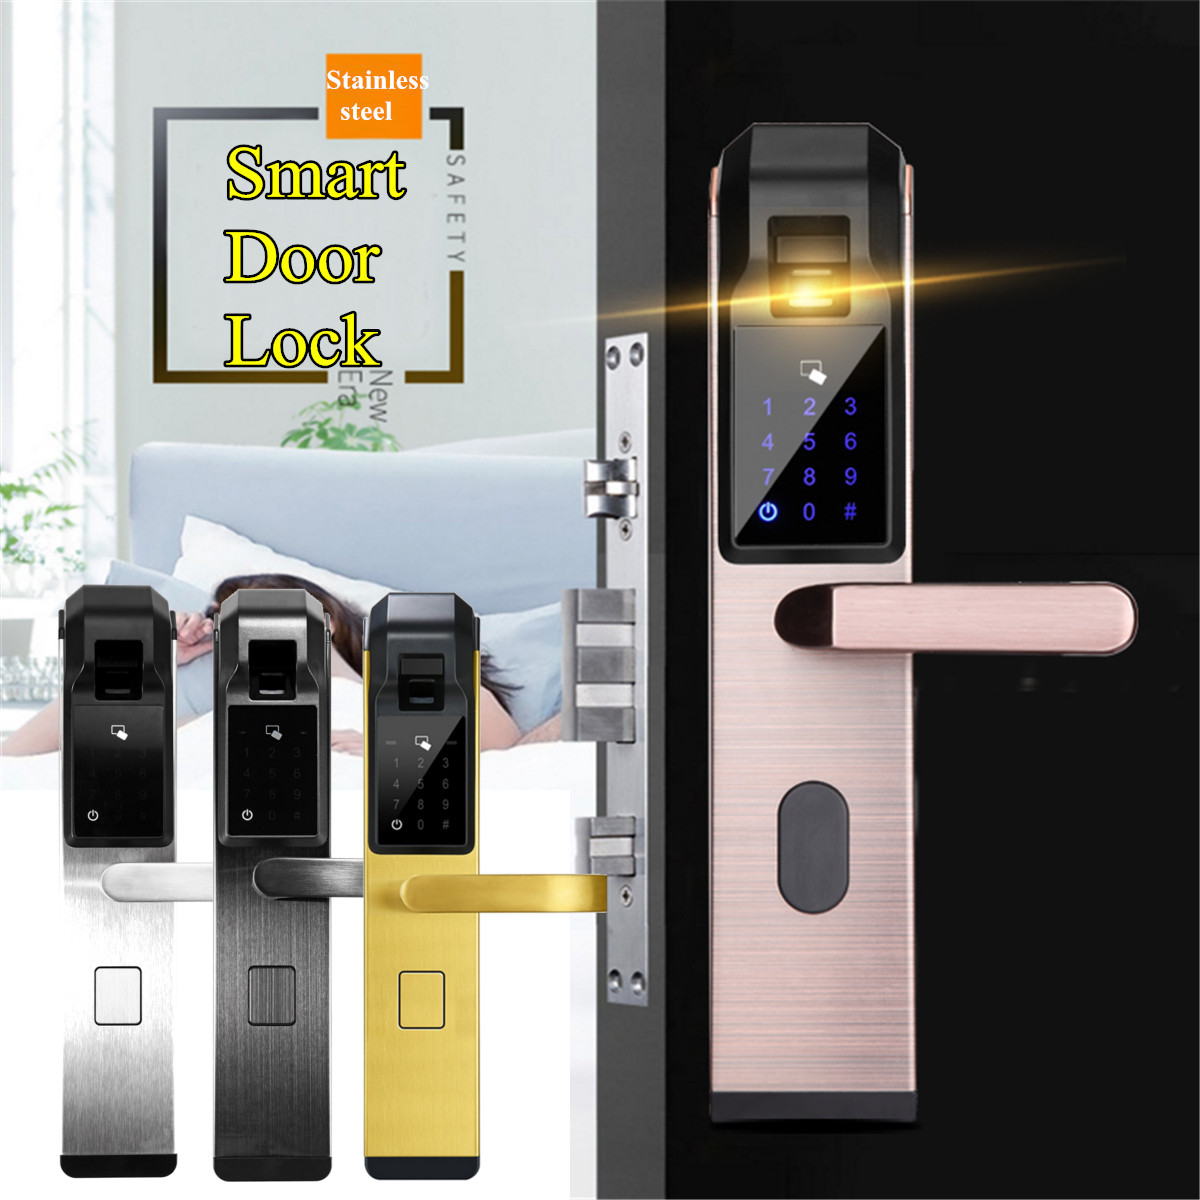 Electric 4 Ways Smart Door Lock Fingerprint Password Access Anti theft Lock Set House Apartment Security Access Control System|Electric Lock| |  - title=